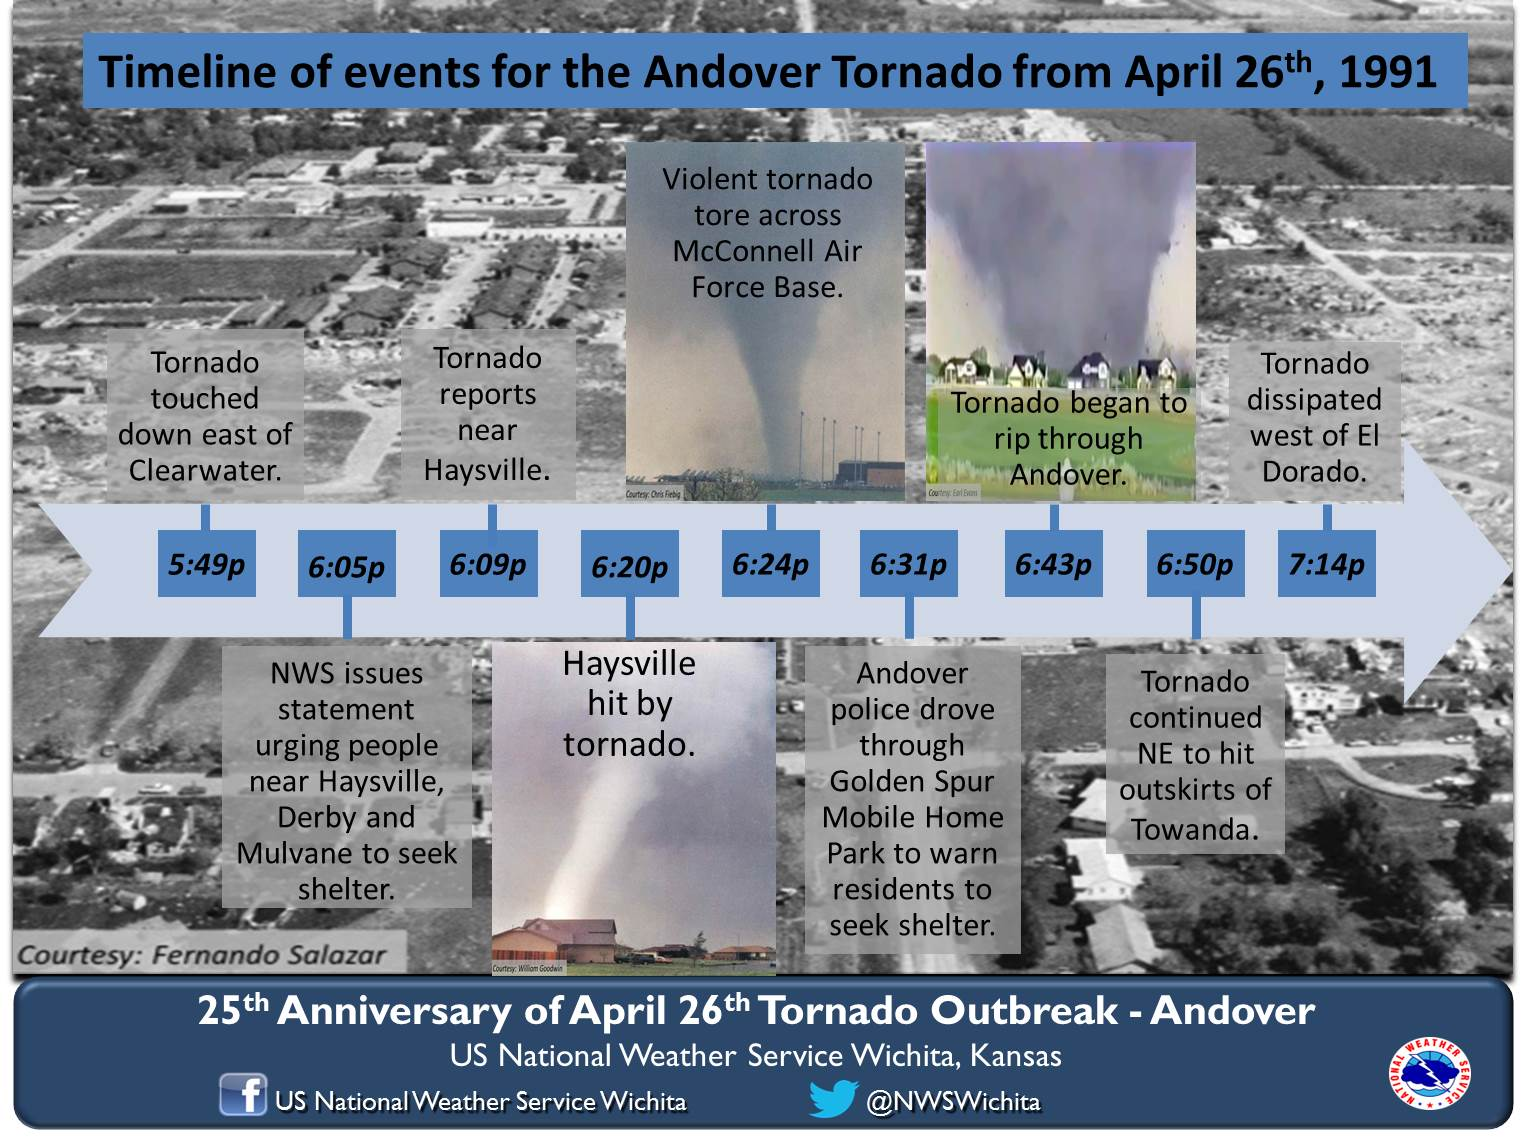 Timeline For Supercell That Produced The Wichita Andover